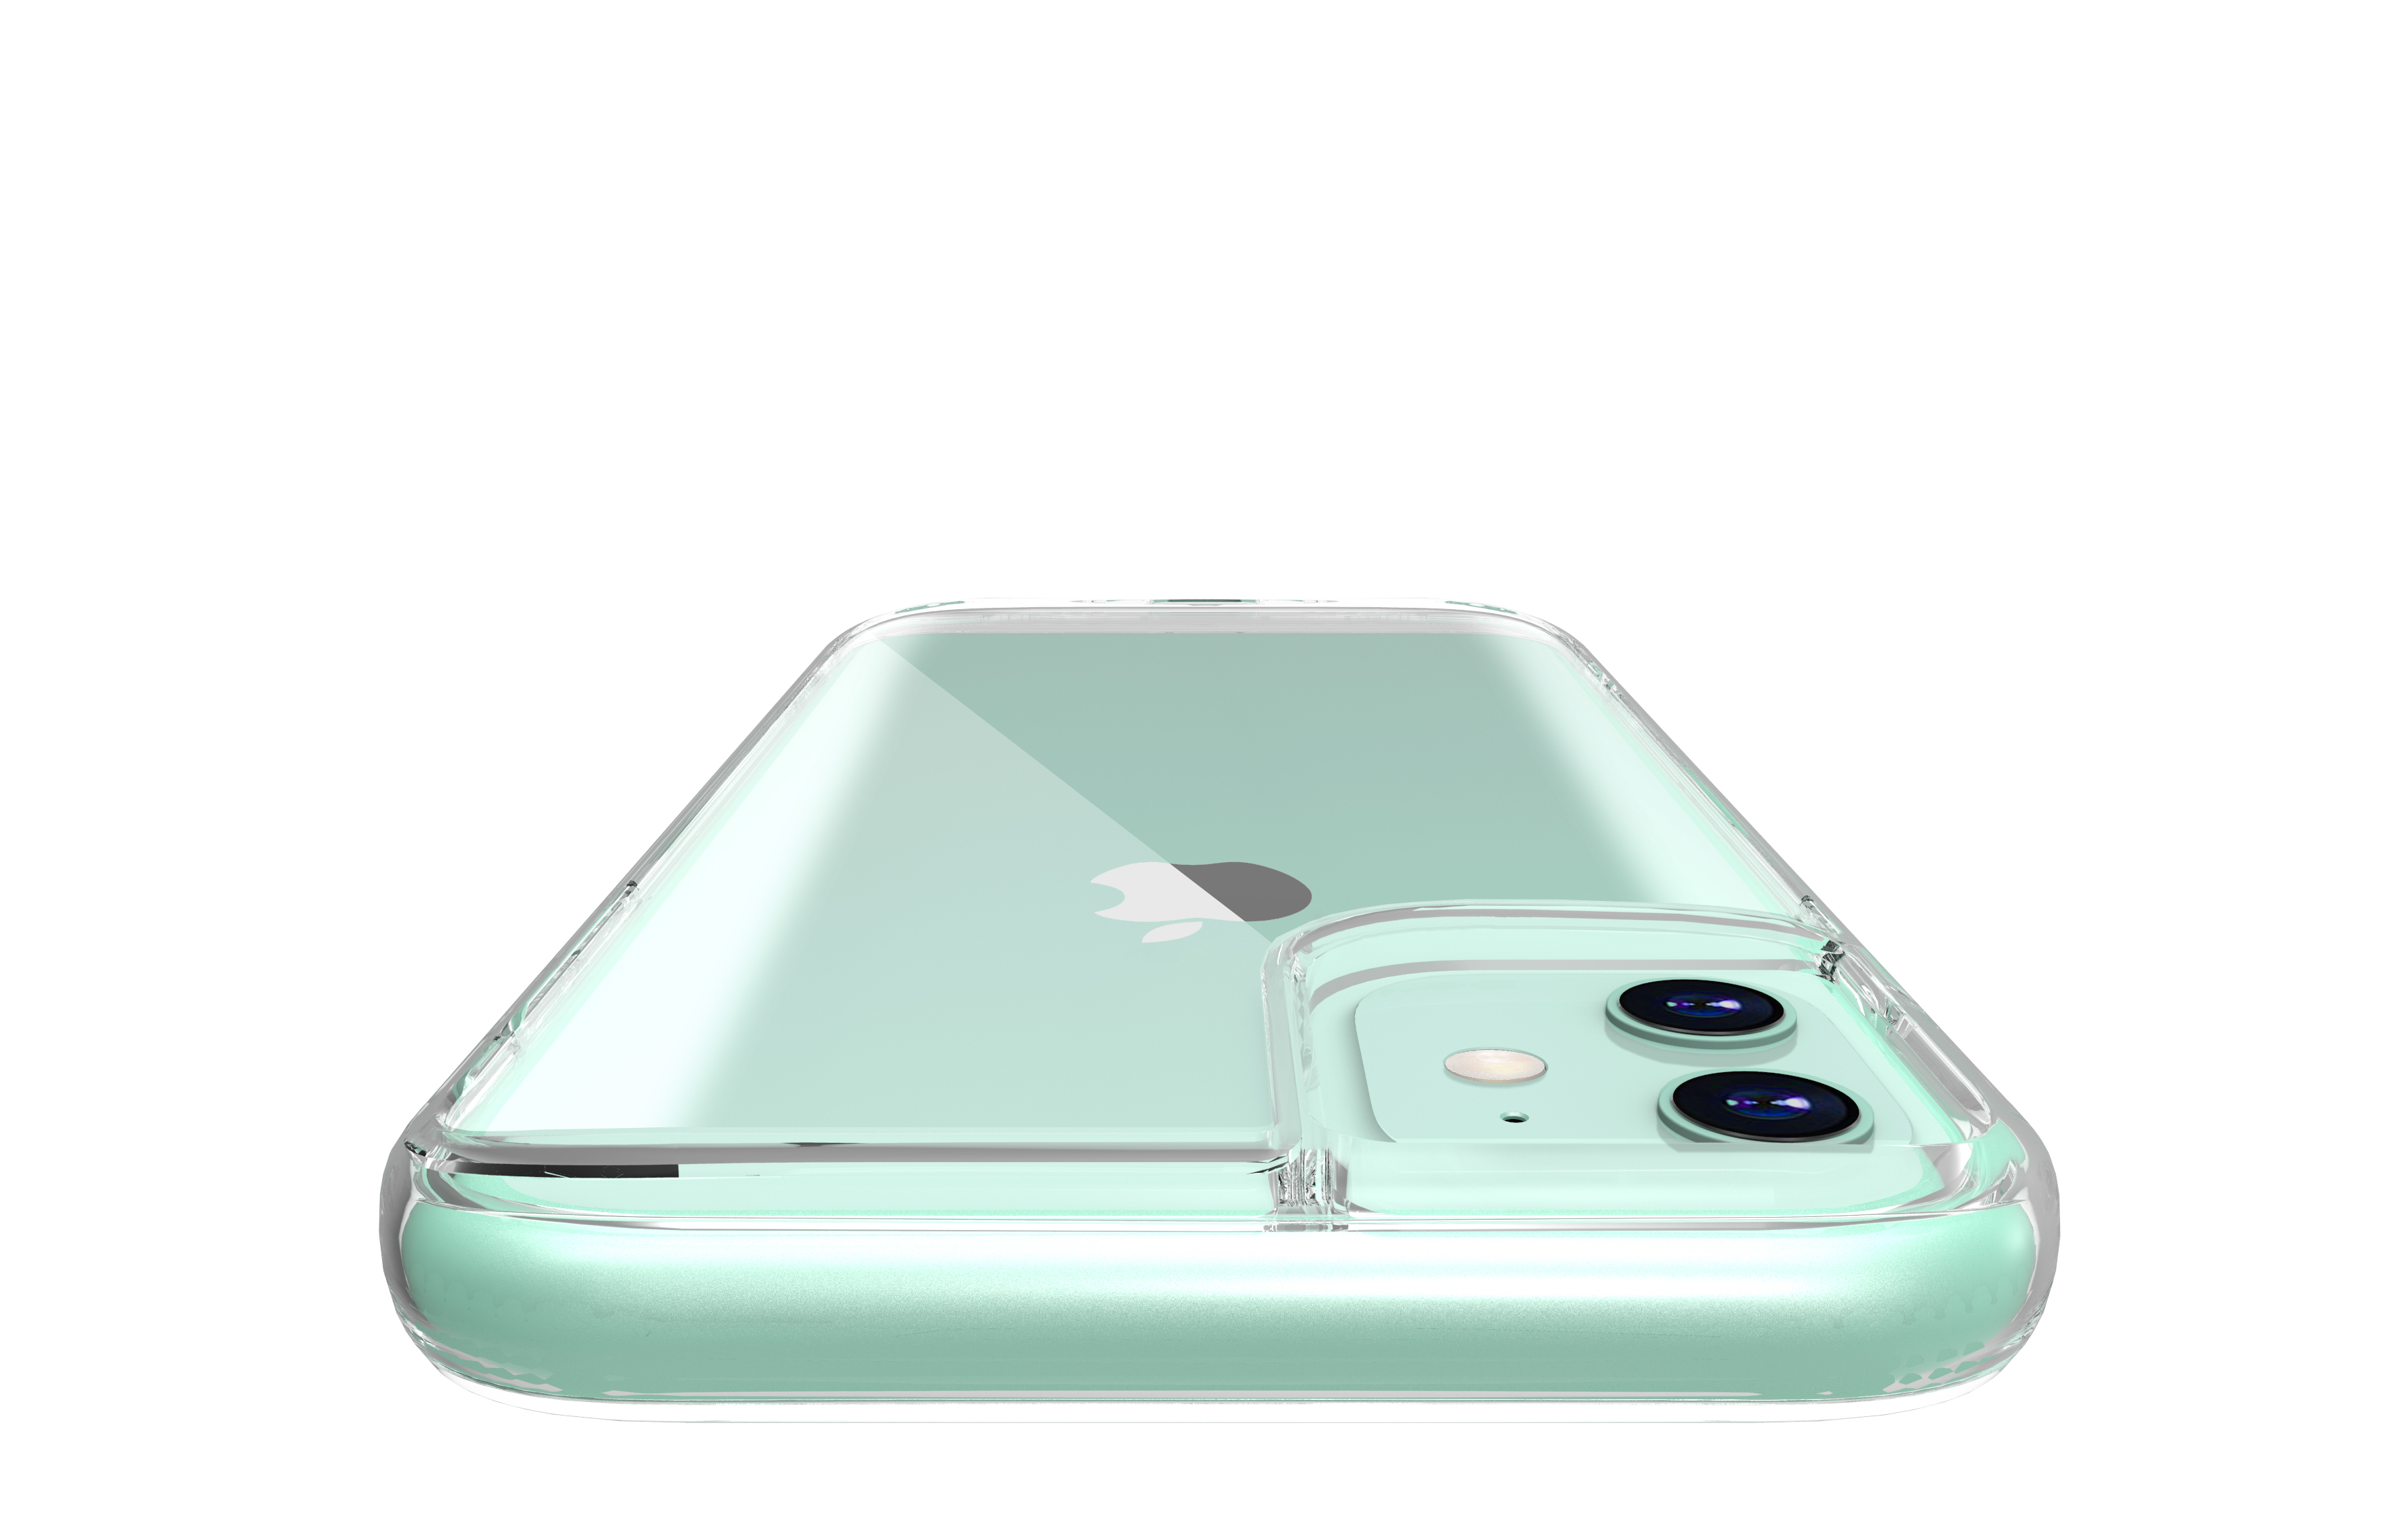 iPhone11-Green for linkase pro ADM